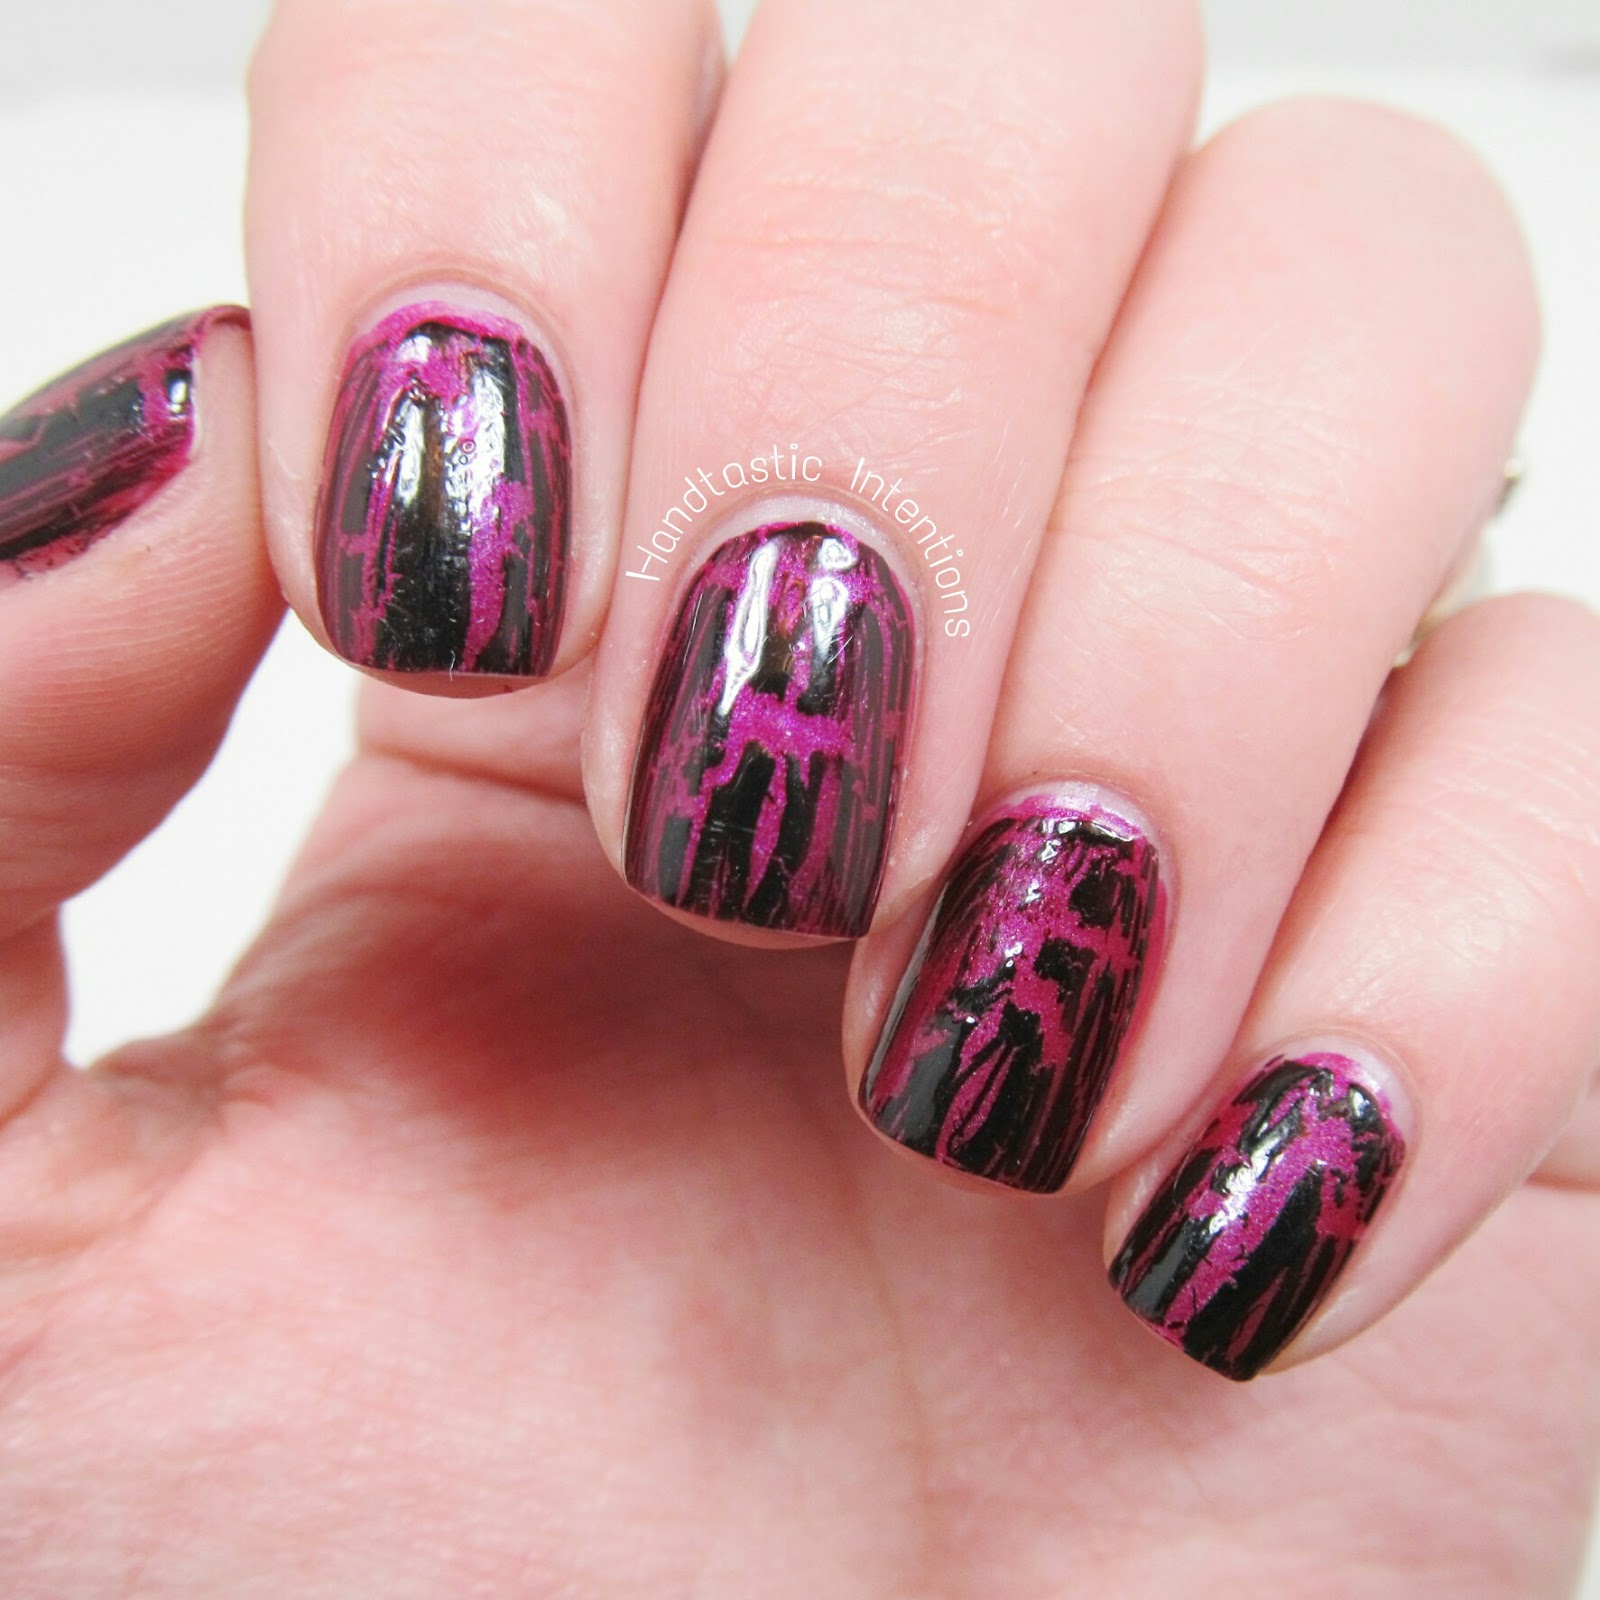 Discontinued Opi Nail Polish Colors: Handtastic Intentions: Sephora By OPI (discontinued